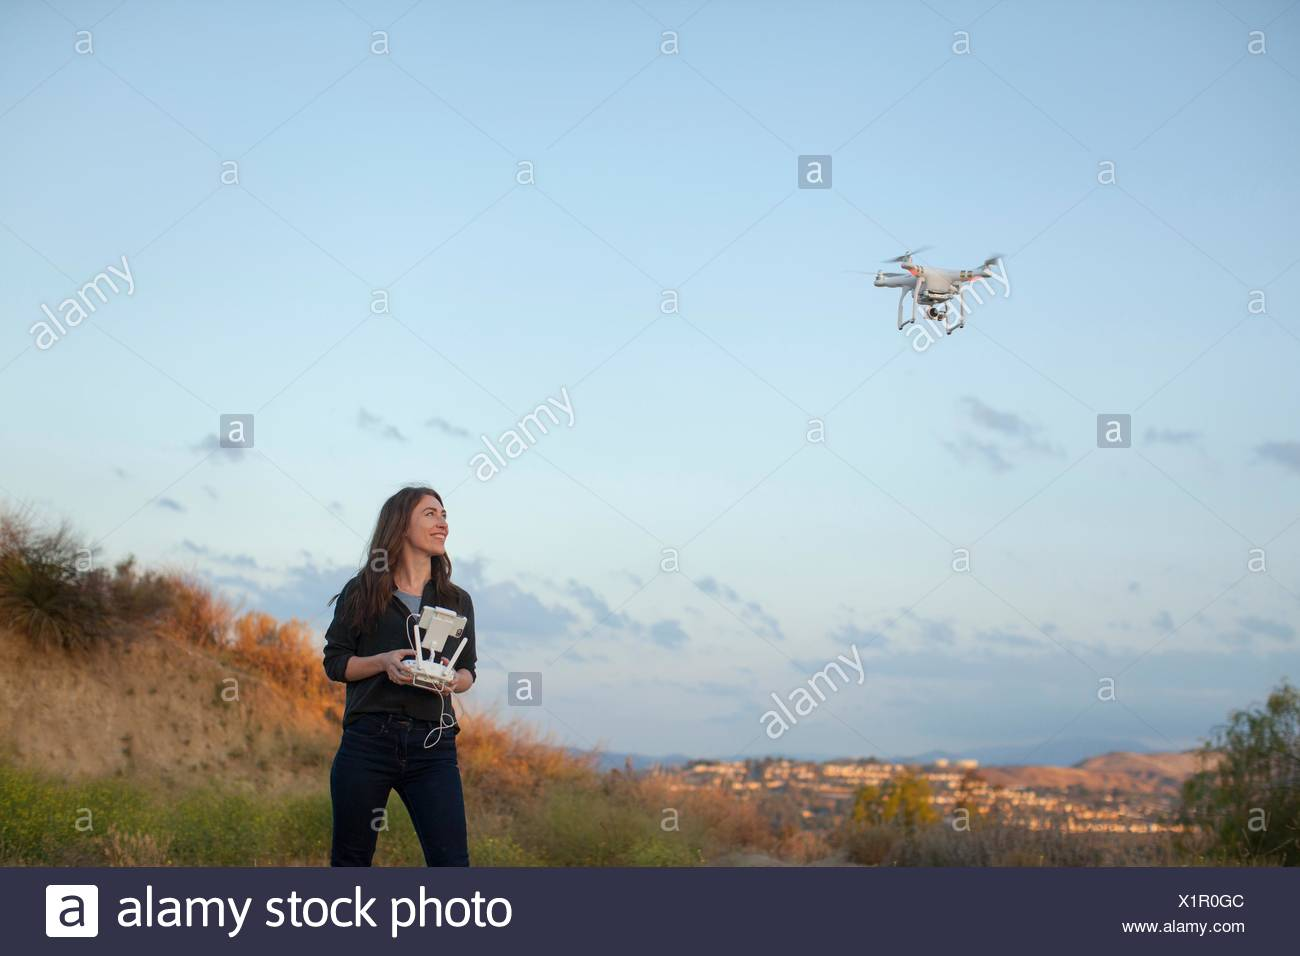 Female commercial operator flying drone looking up smiling